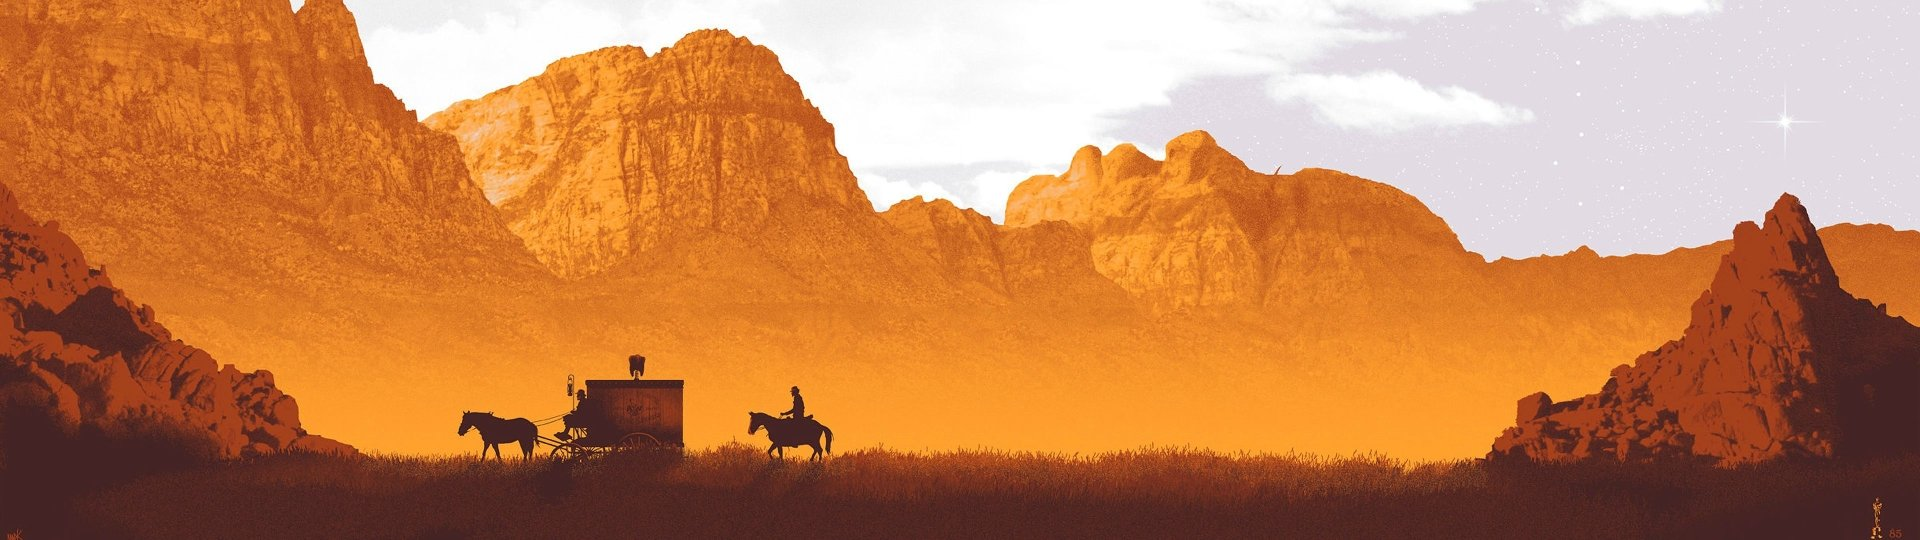 30 Django Unchained HD Wallpapers Background Images 1920x540